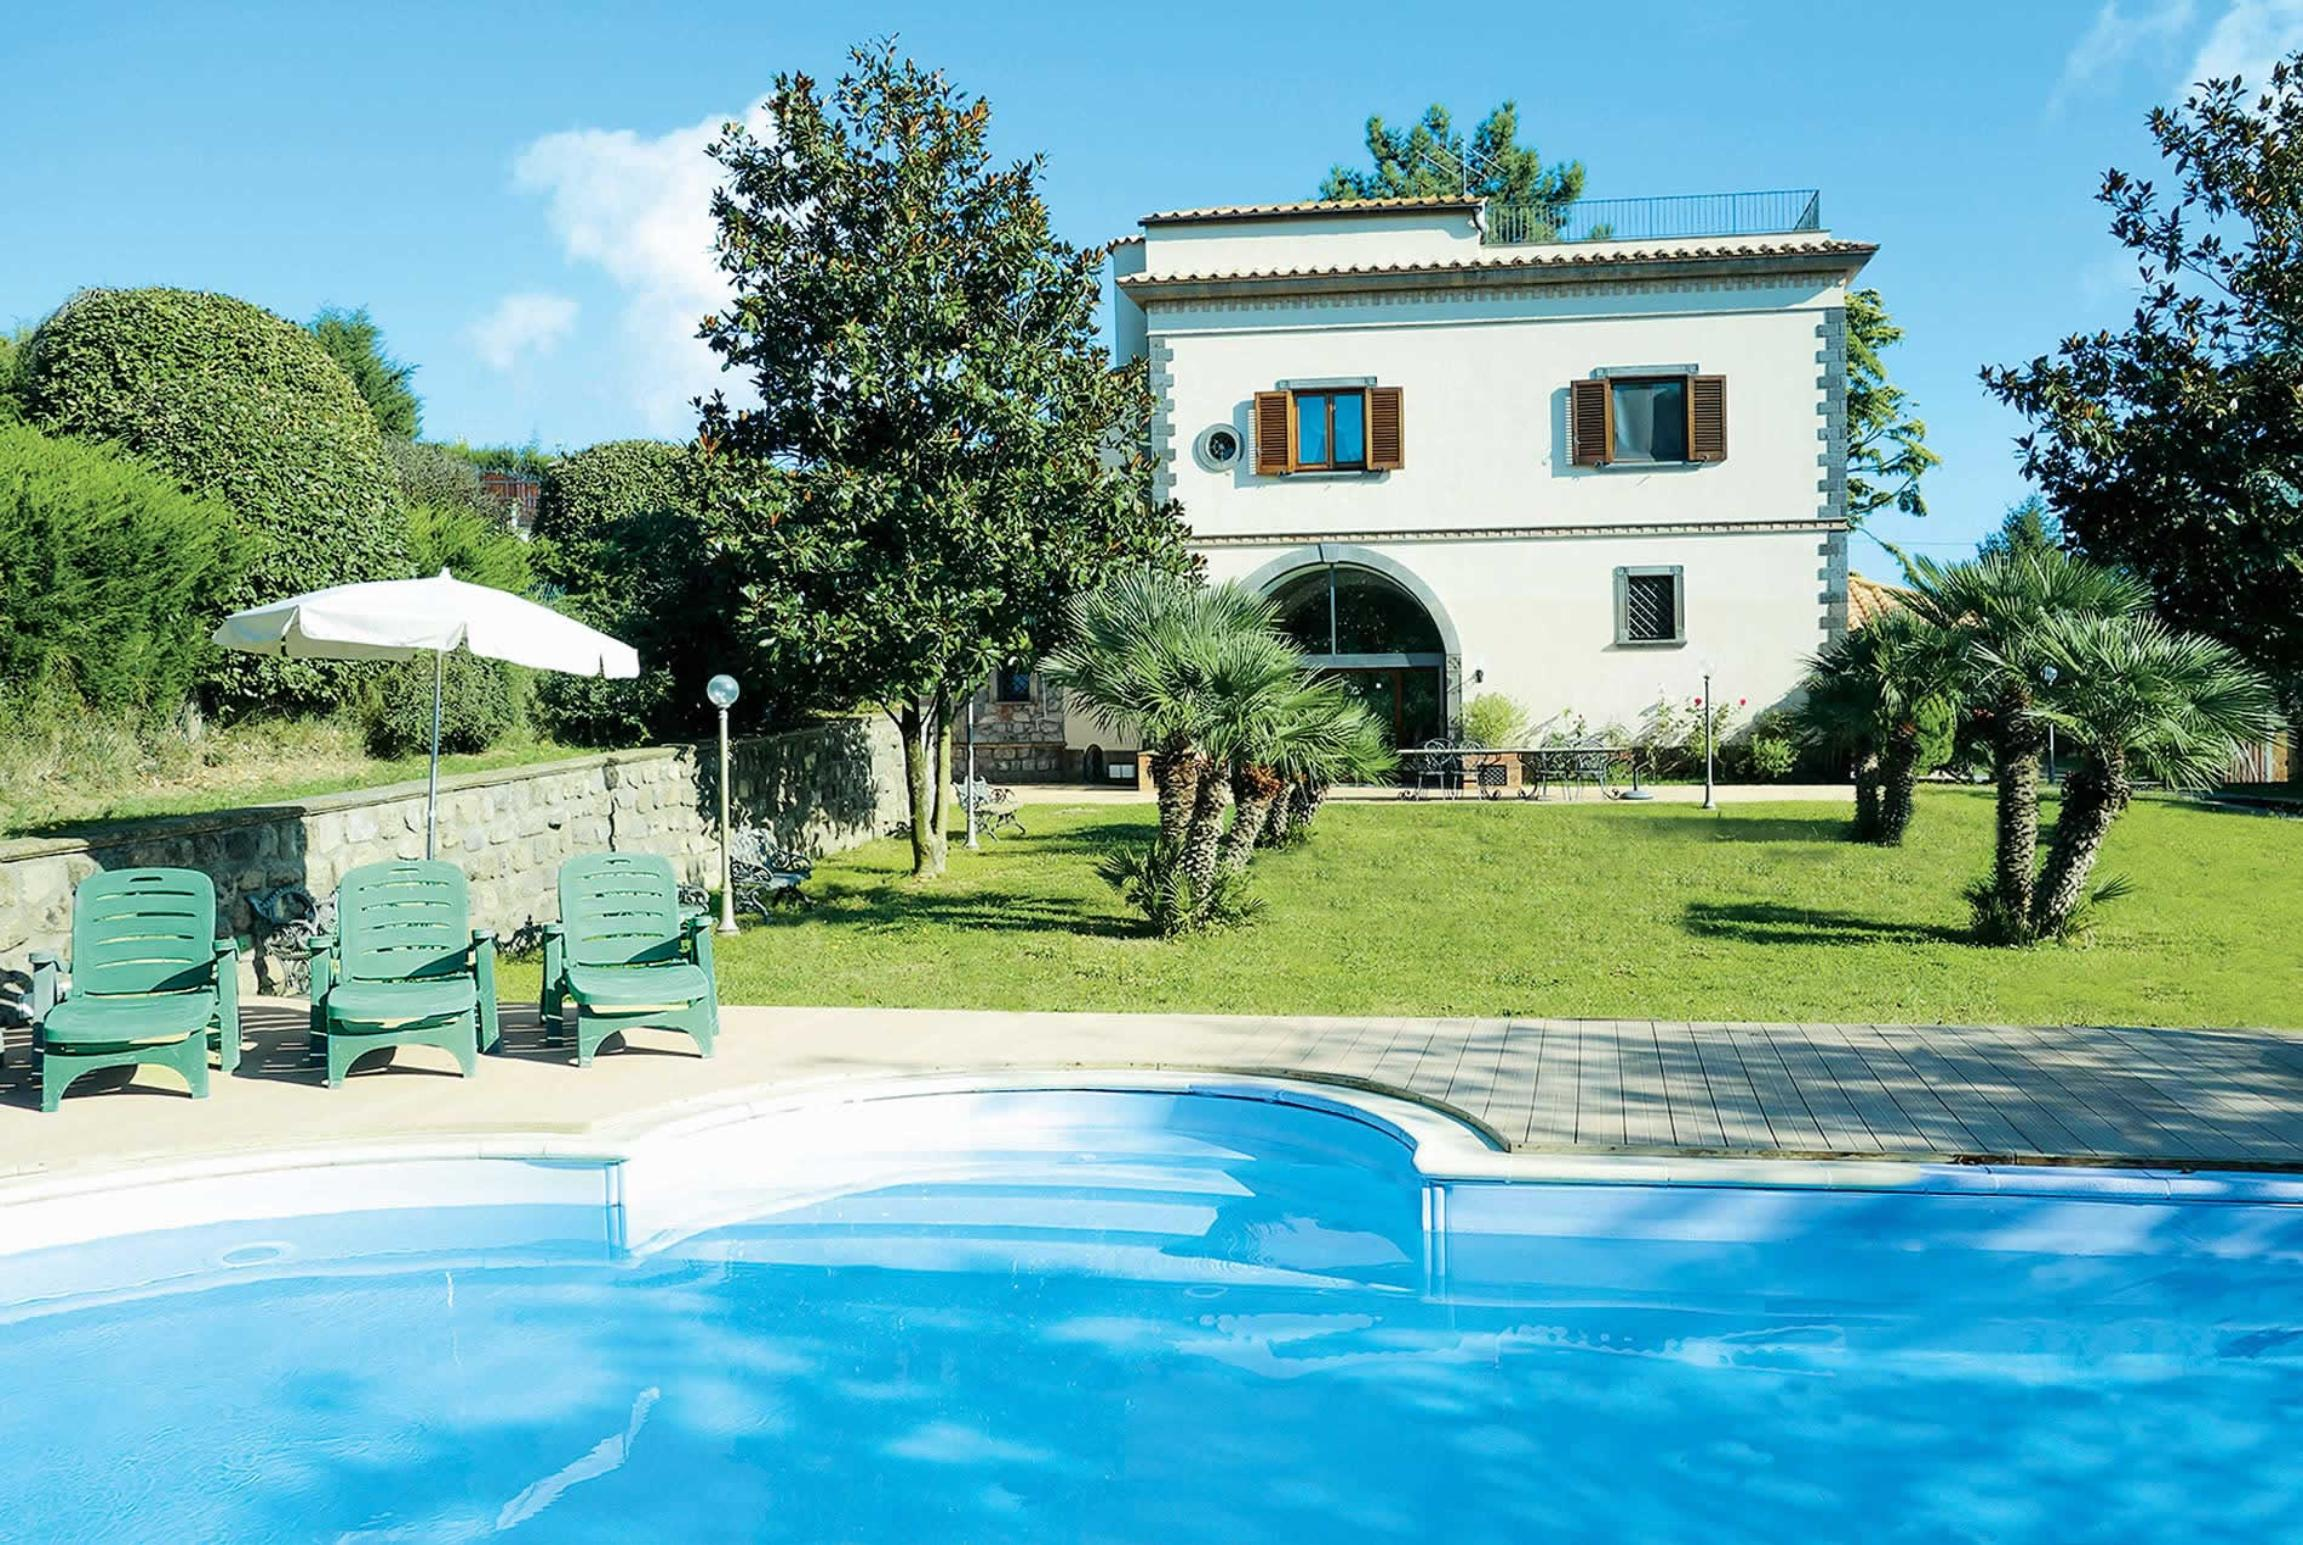 Read more about Giardino villa